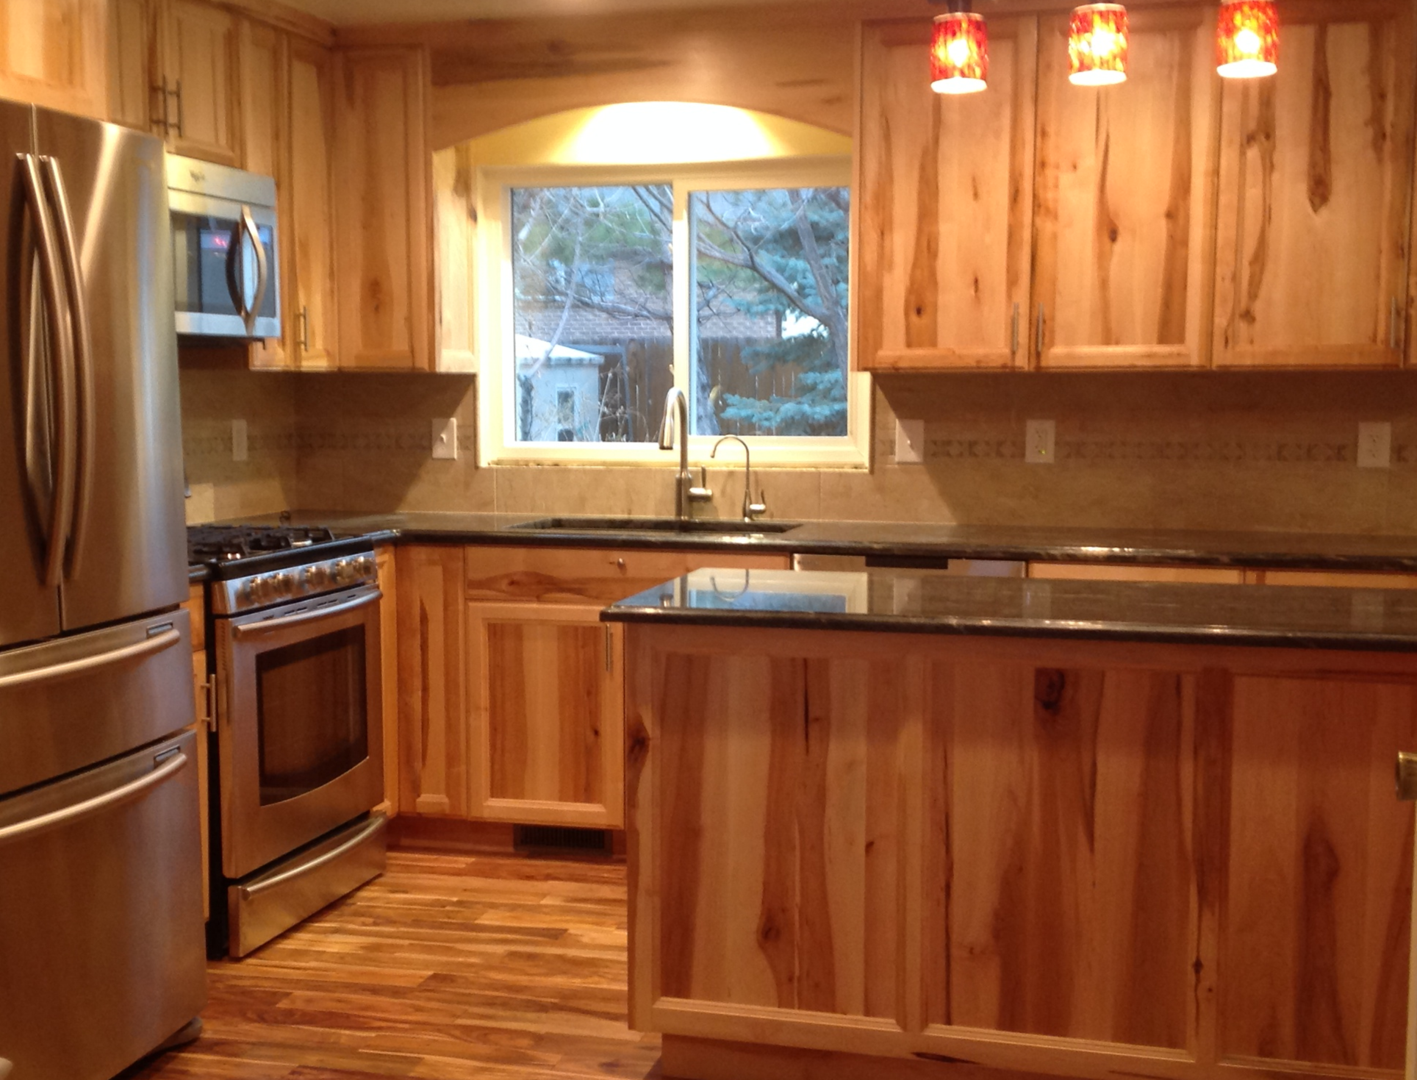 nuedge remodeling offers complete custom kitchen remodeling and your dream custom kitchen remodeling project